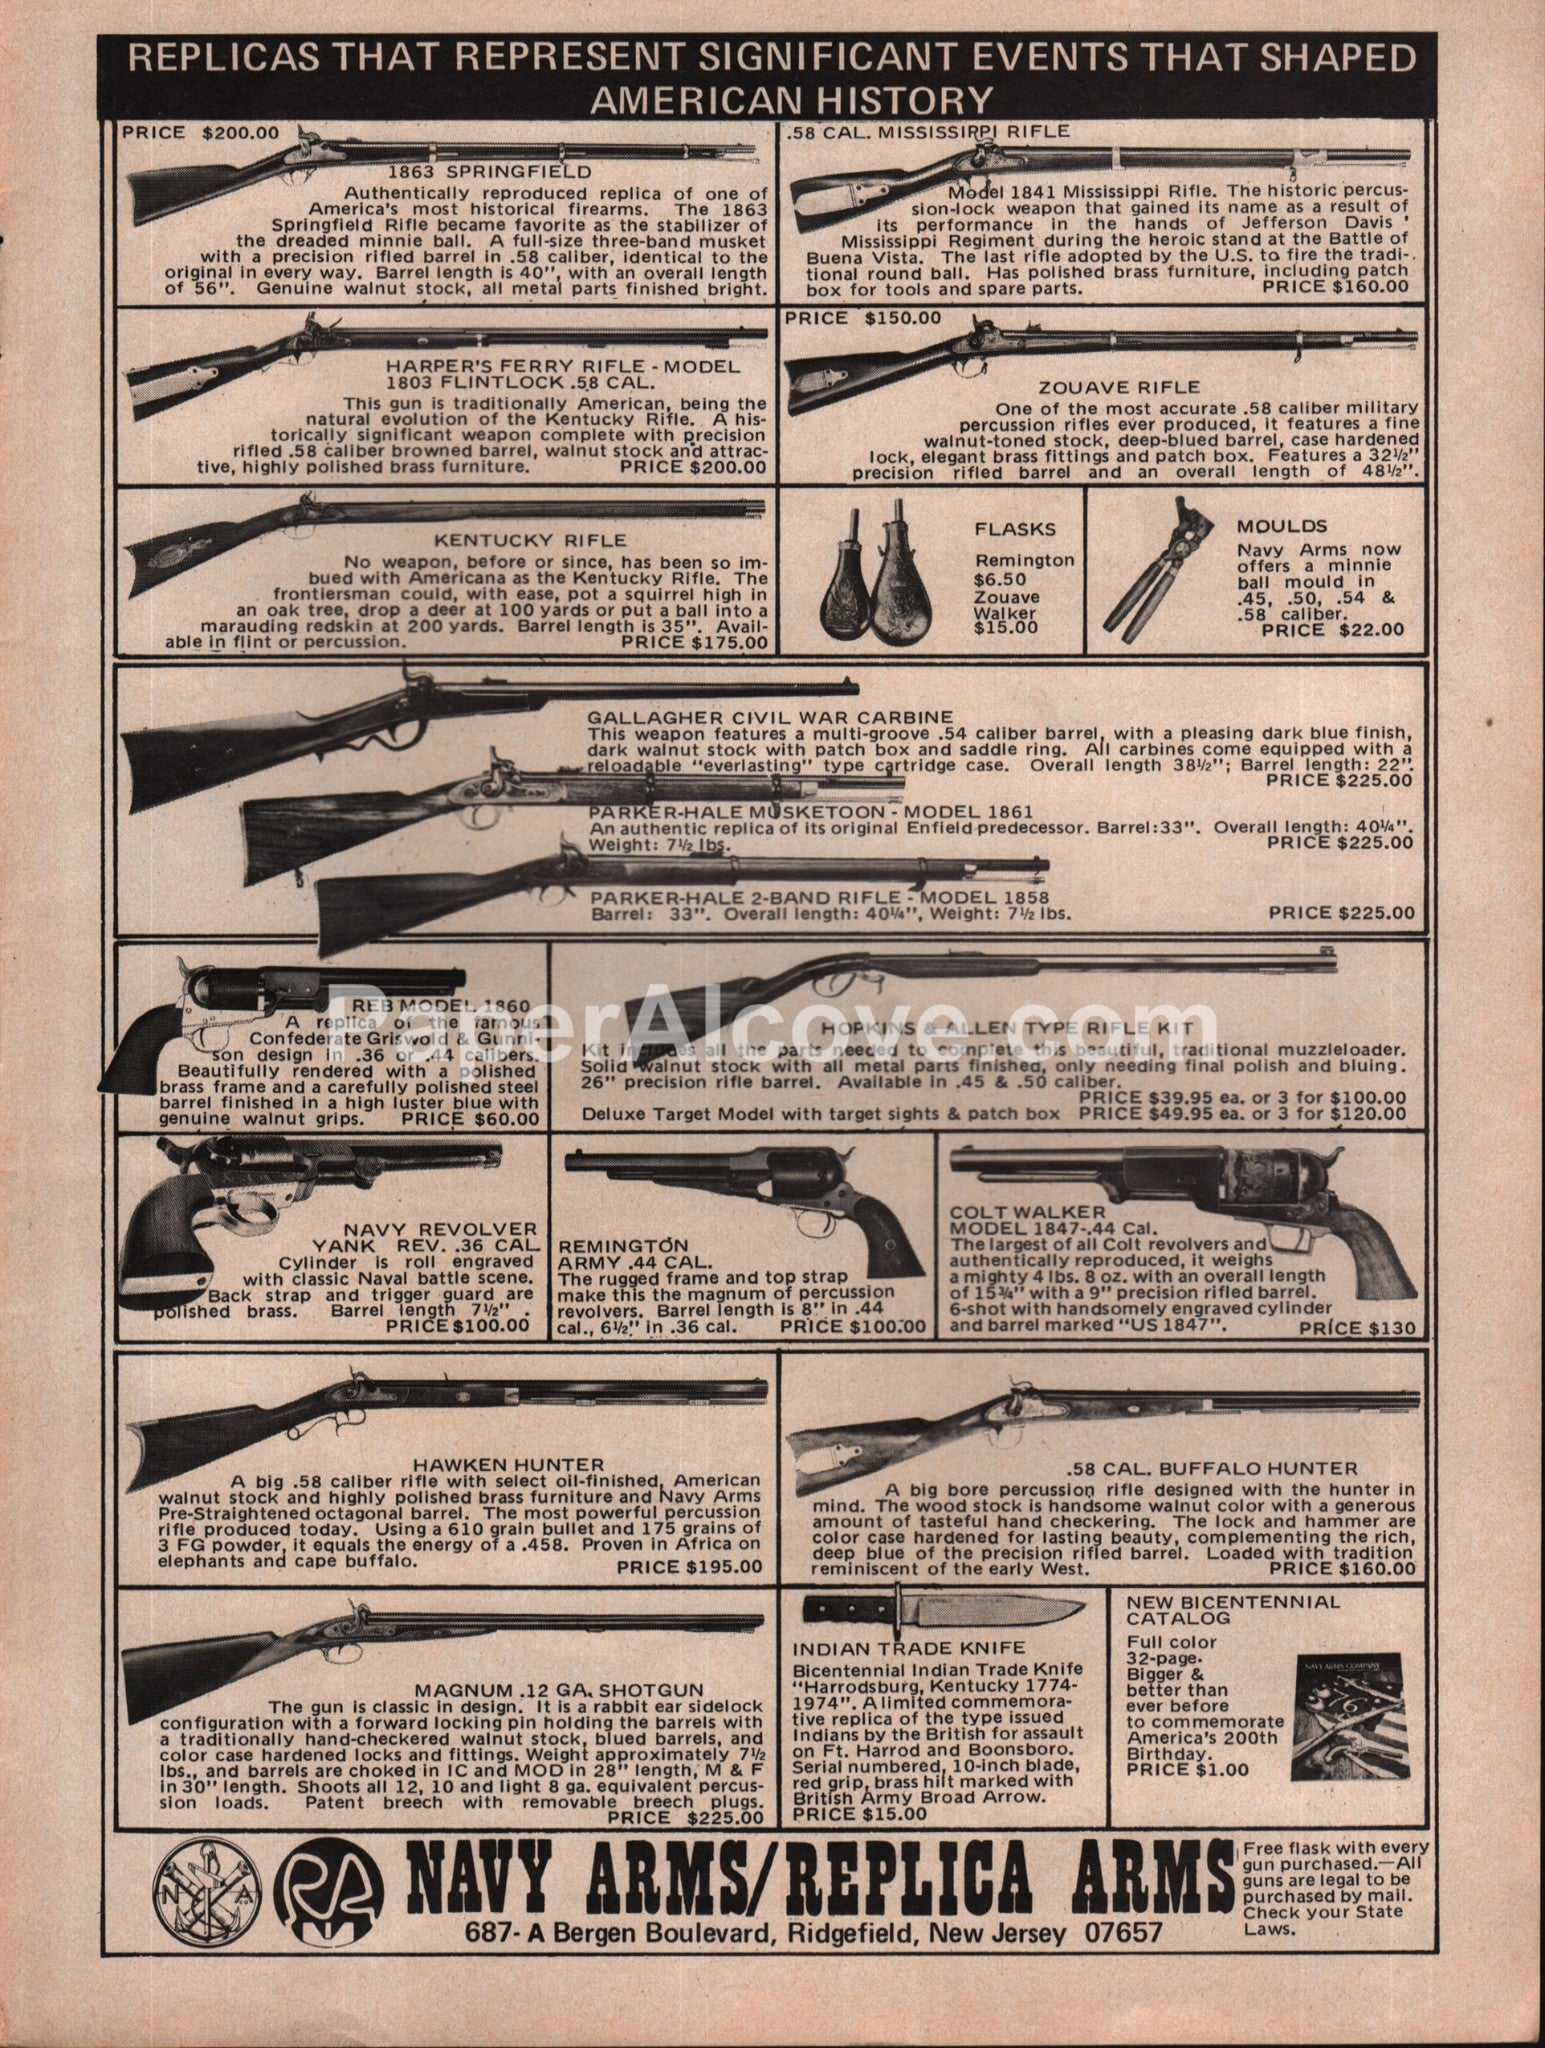 Navy Arms / Replica Arms rifles 1976 vintage original old magazine ad